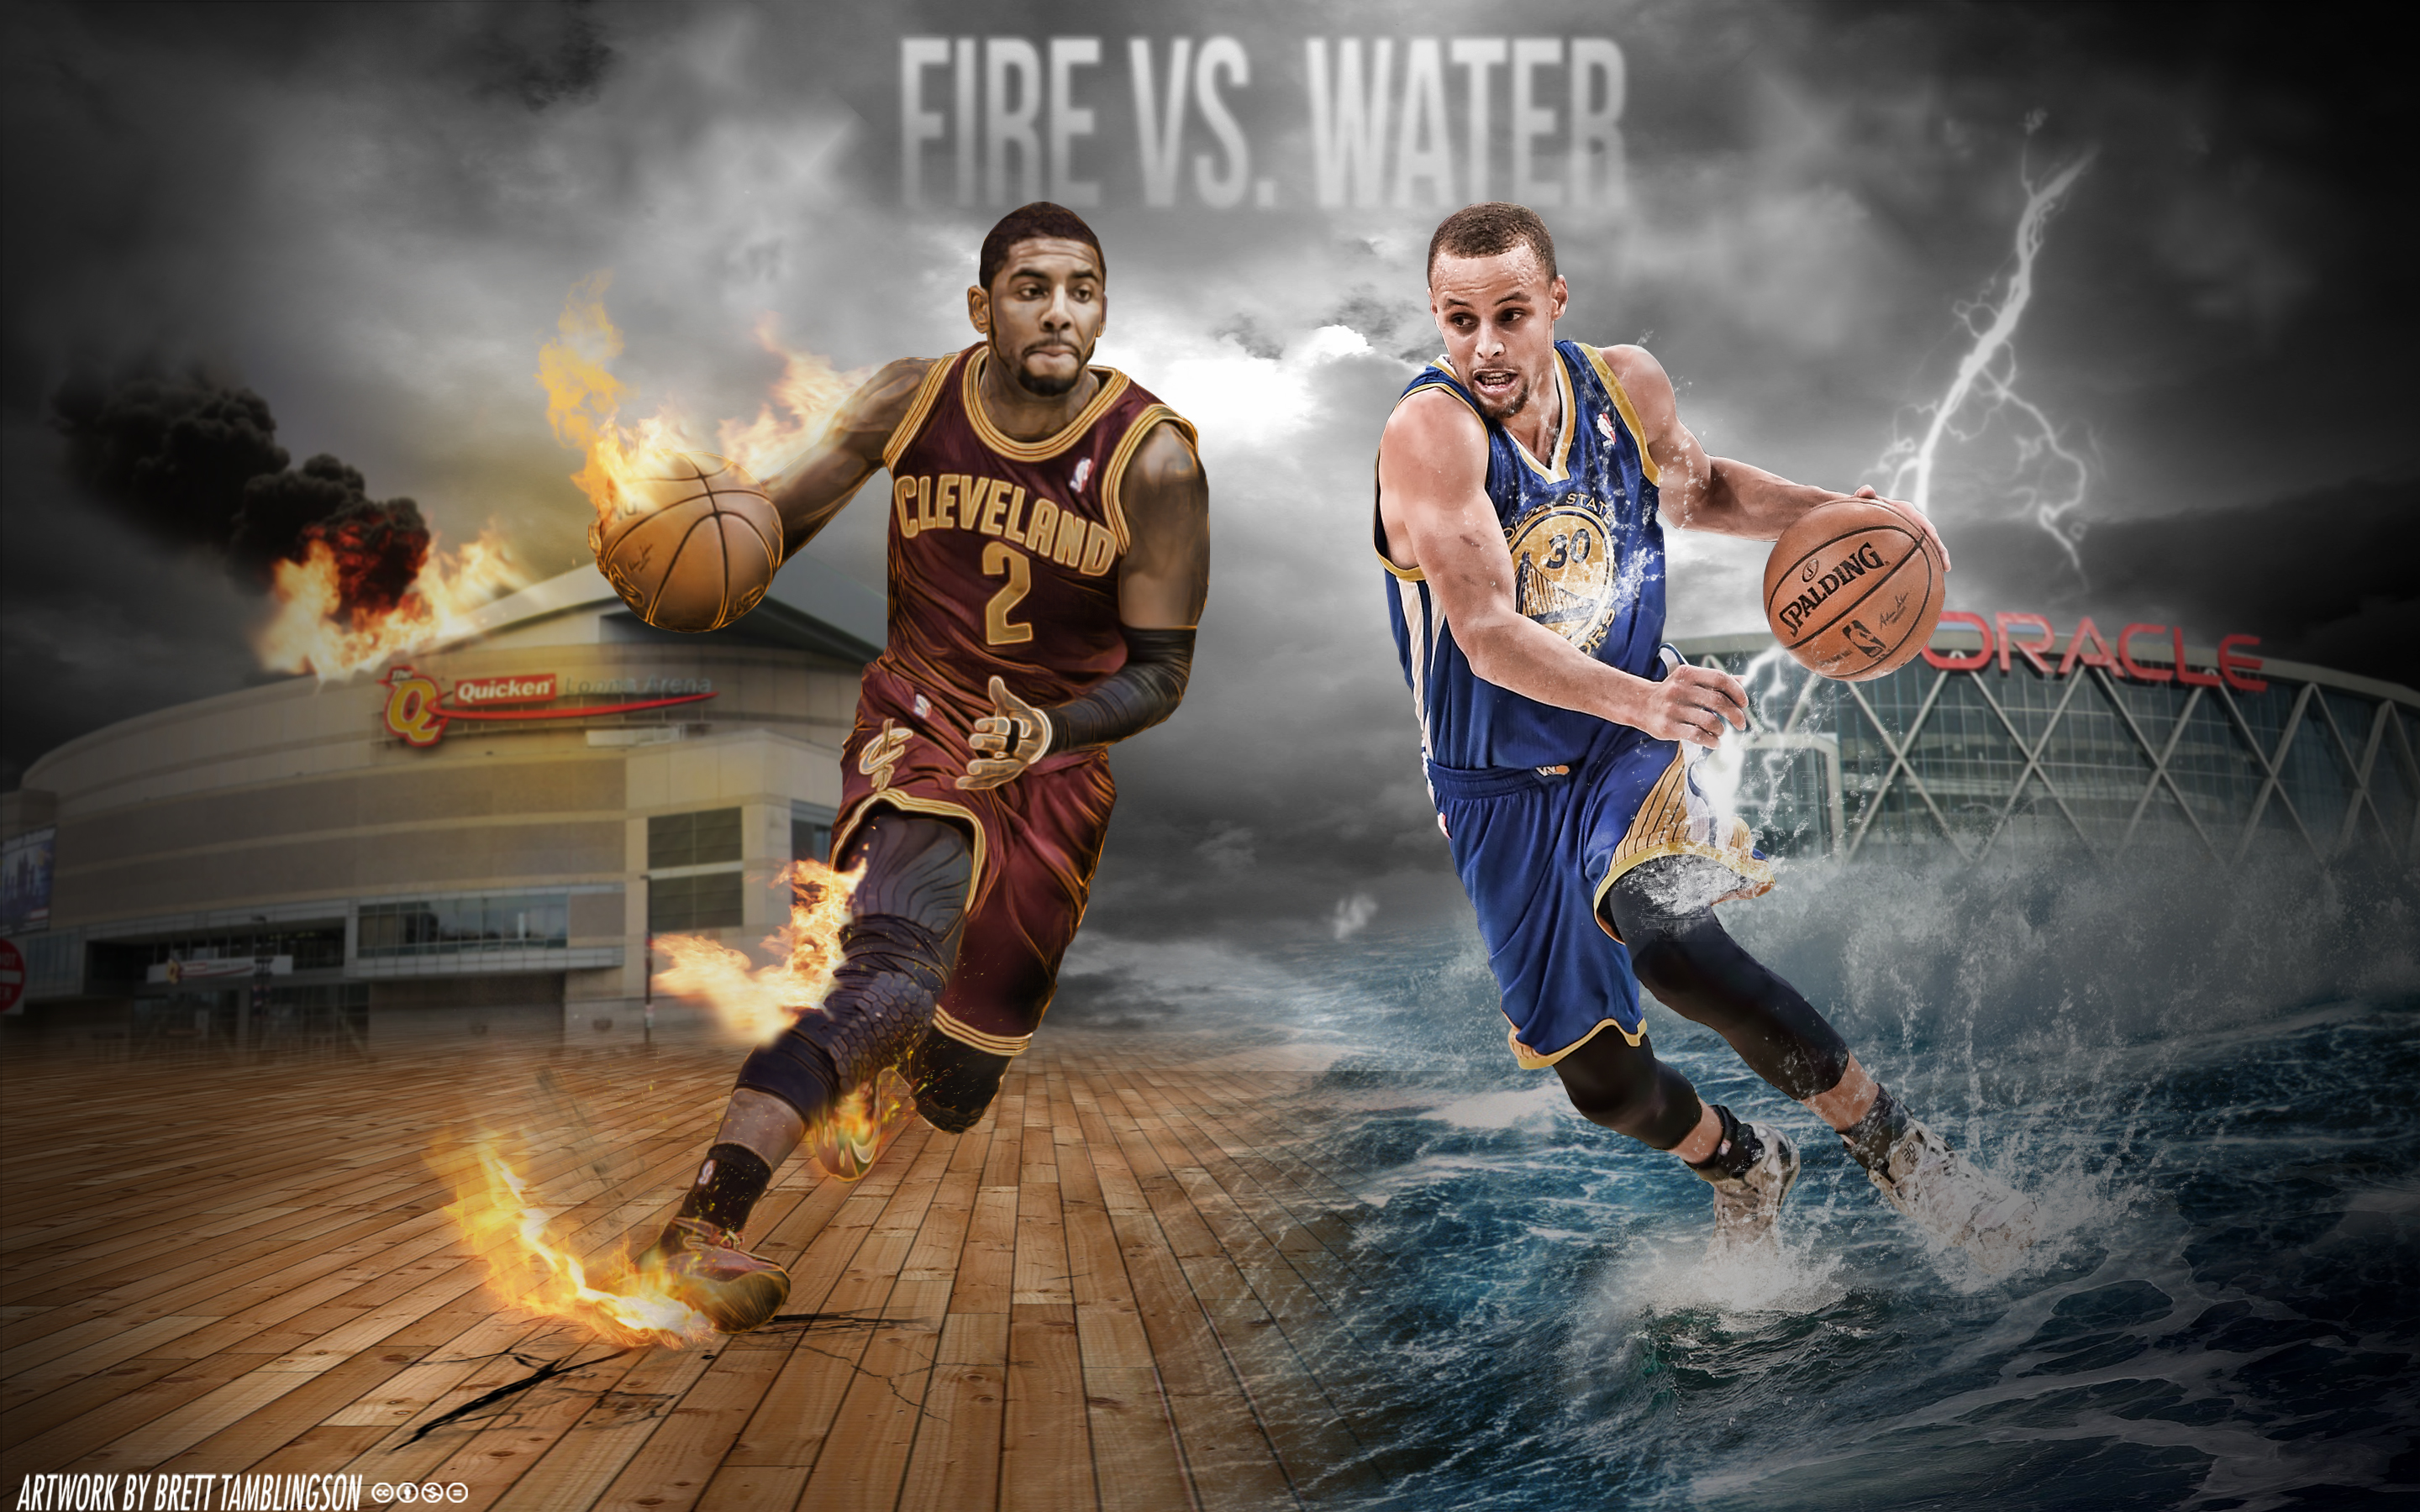 kyrie irving and stephen curry   wallpaper by btamdesigns d8bzg1ejpg 2880x1800